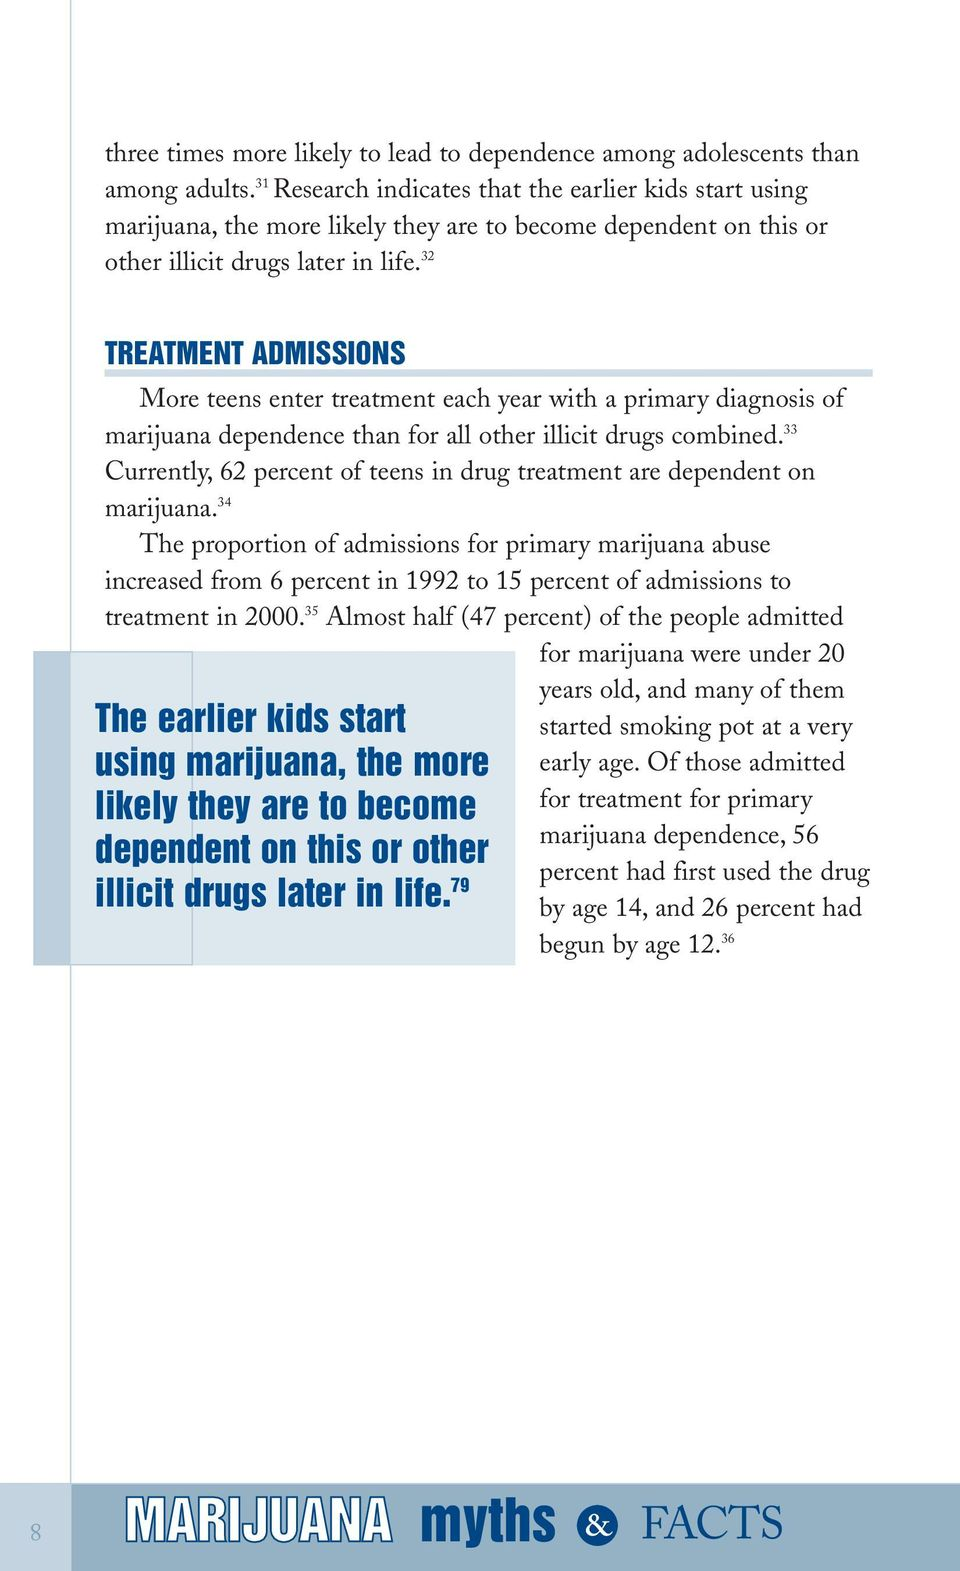 32 TREATMENT ADMISSIONS More teens enter treatment each year with a primary diagnosis of marijuana dependence than for all other illicit drugs combined.